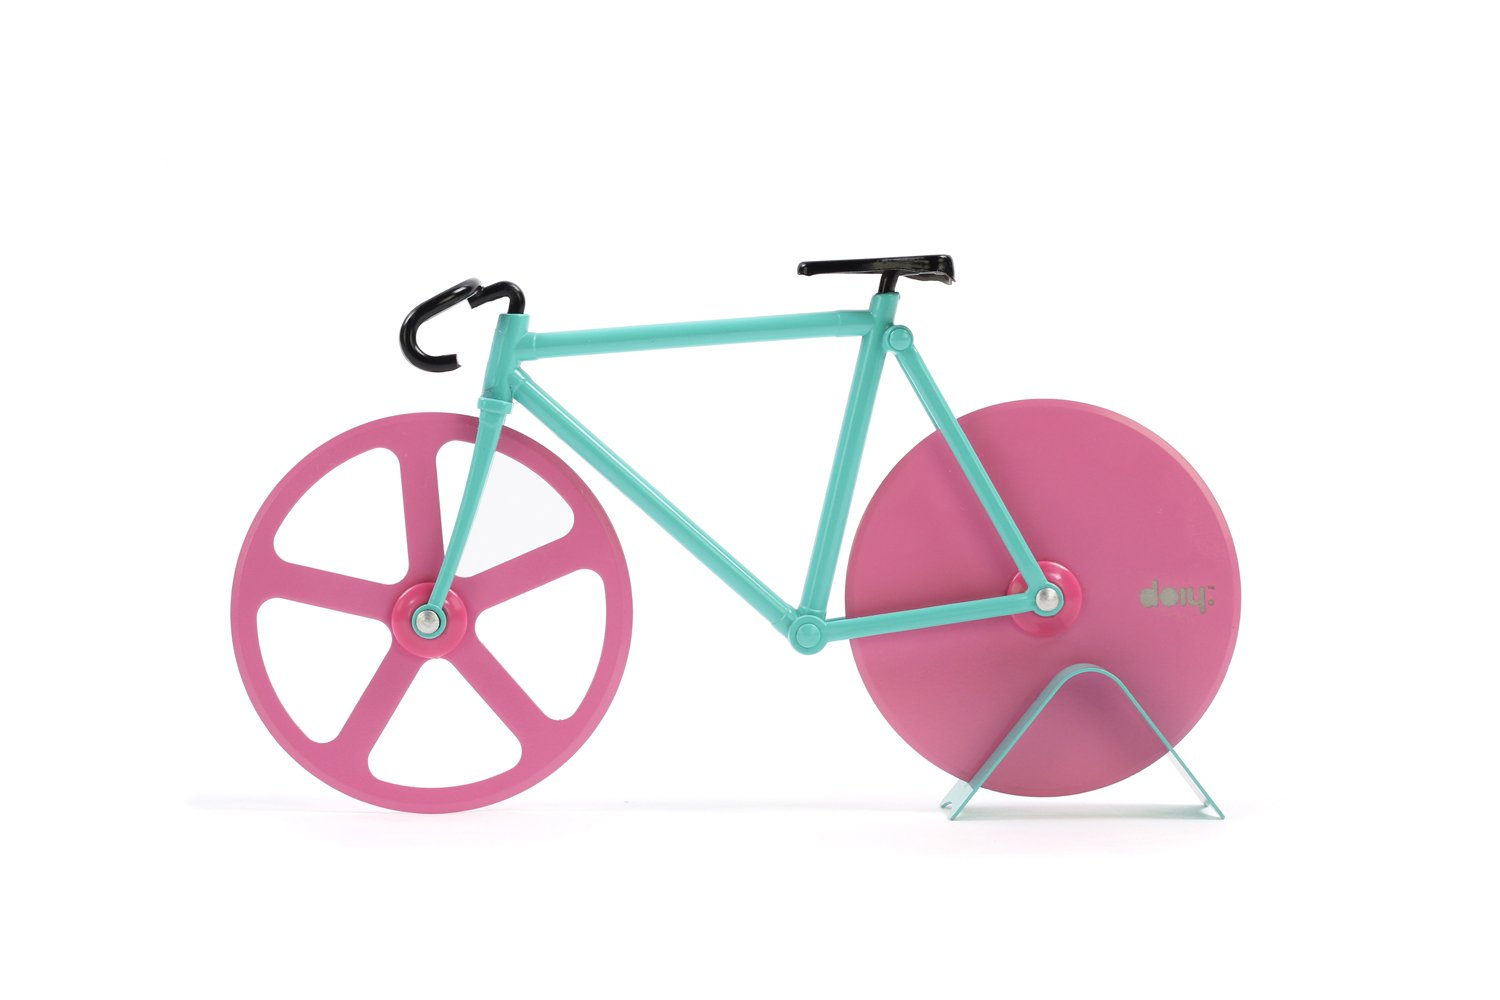 Amazon.com: Pizza Cutter - Bicycle Pizza Cutter: Blue & Pink ...